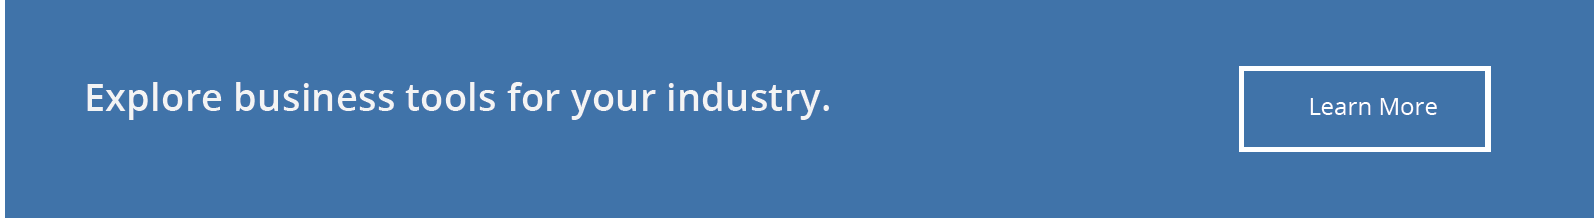 Explore business tools for your auto industry